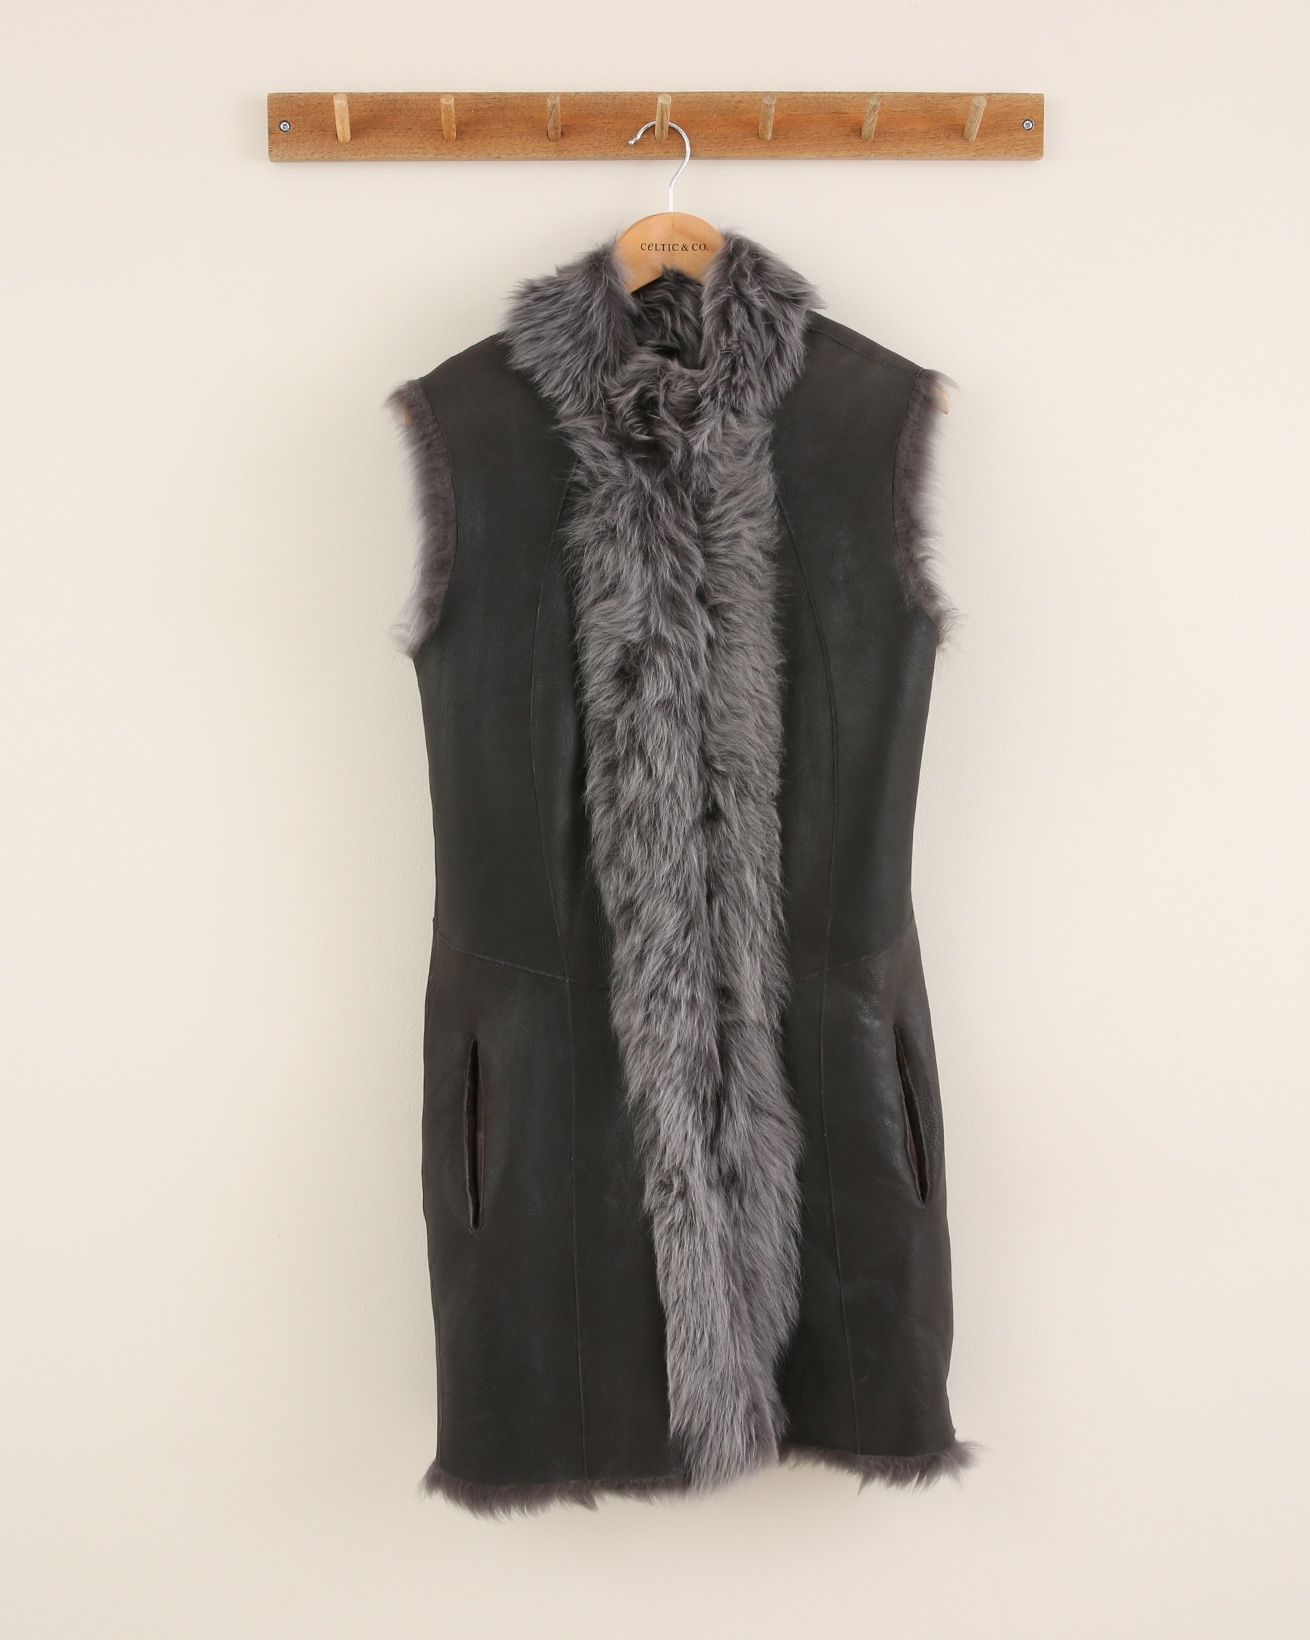 Long Reversible Toscana Gilet - Size Extra Small - Charcoal Snow Tip - 2097